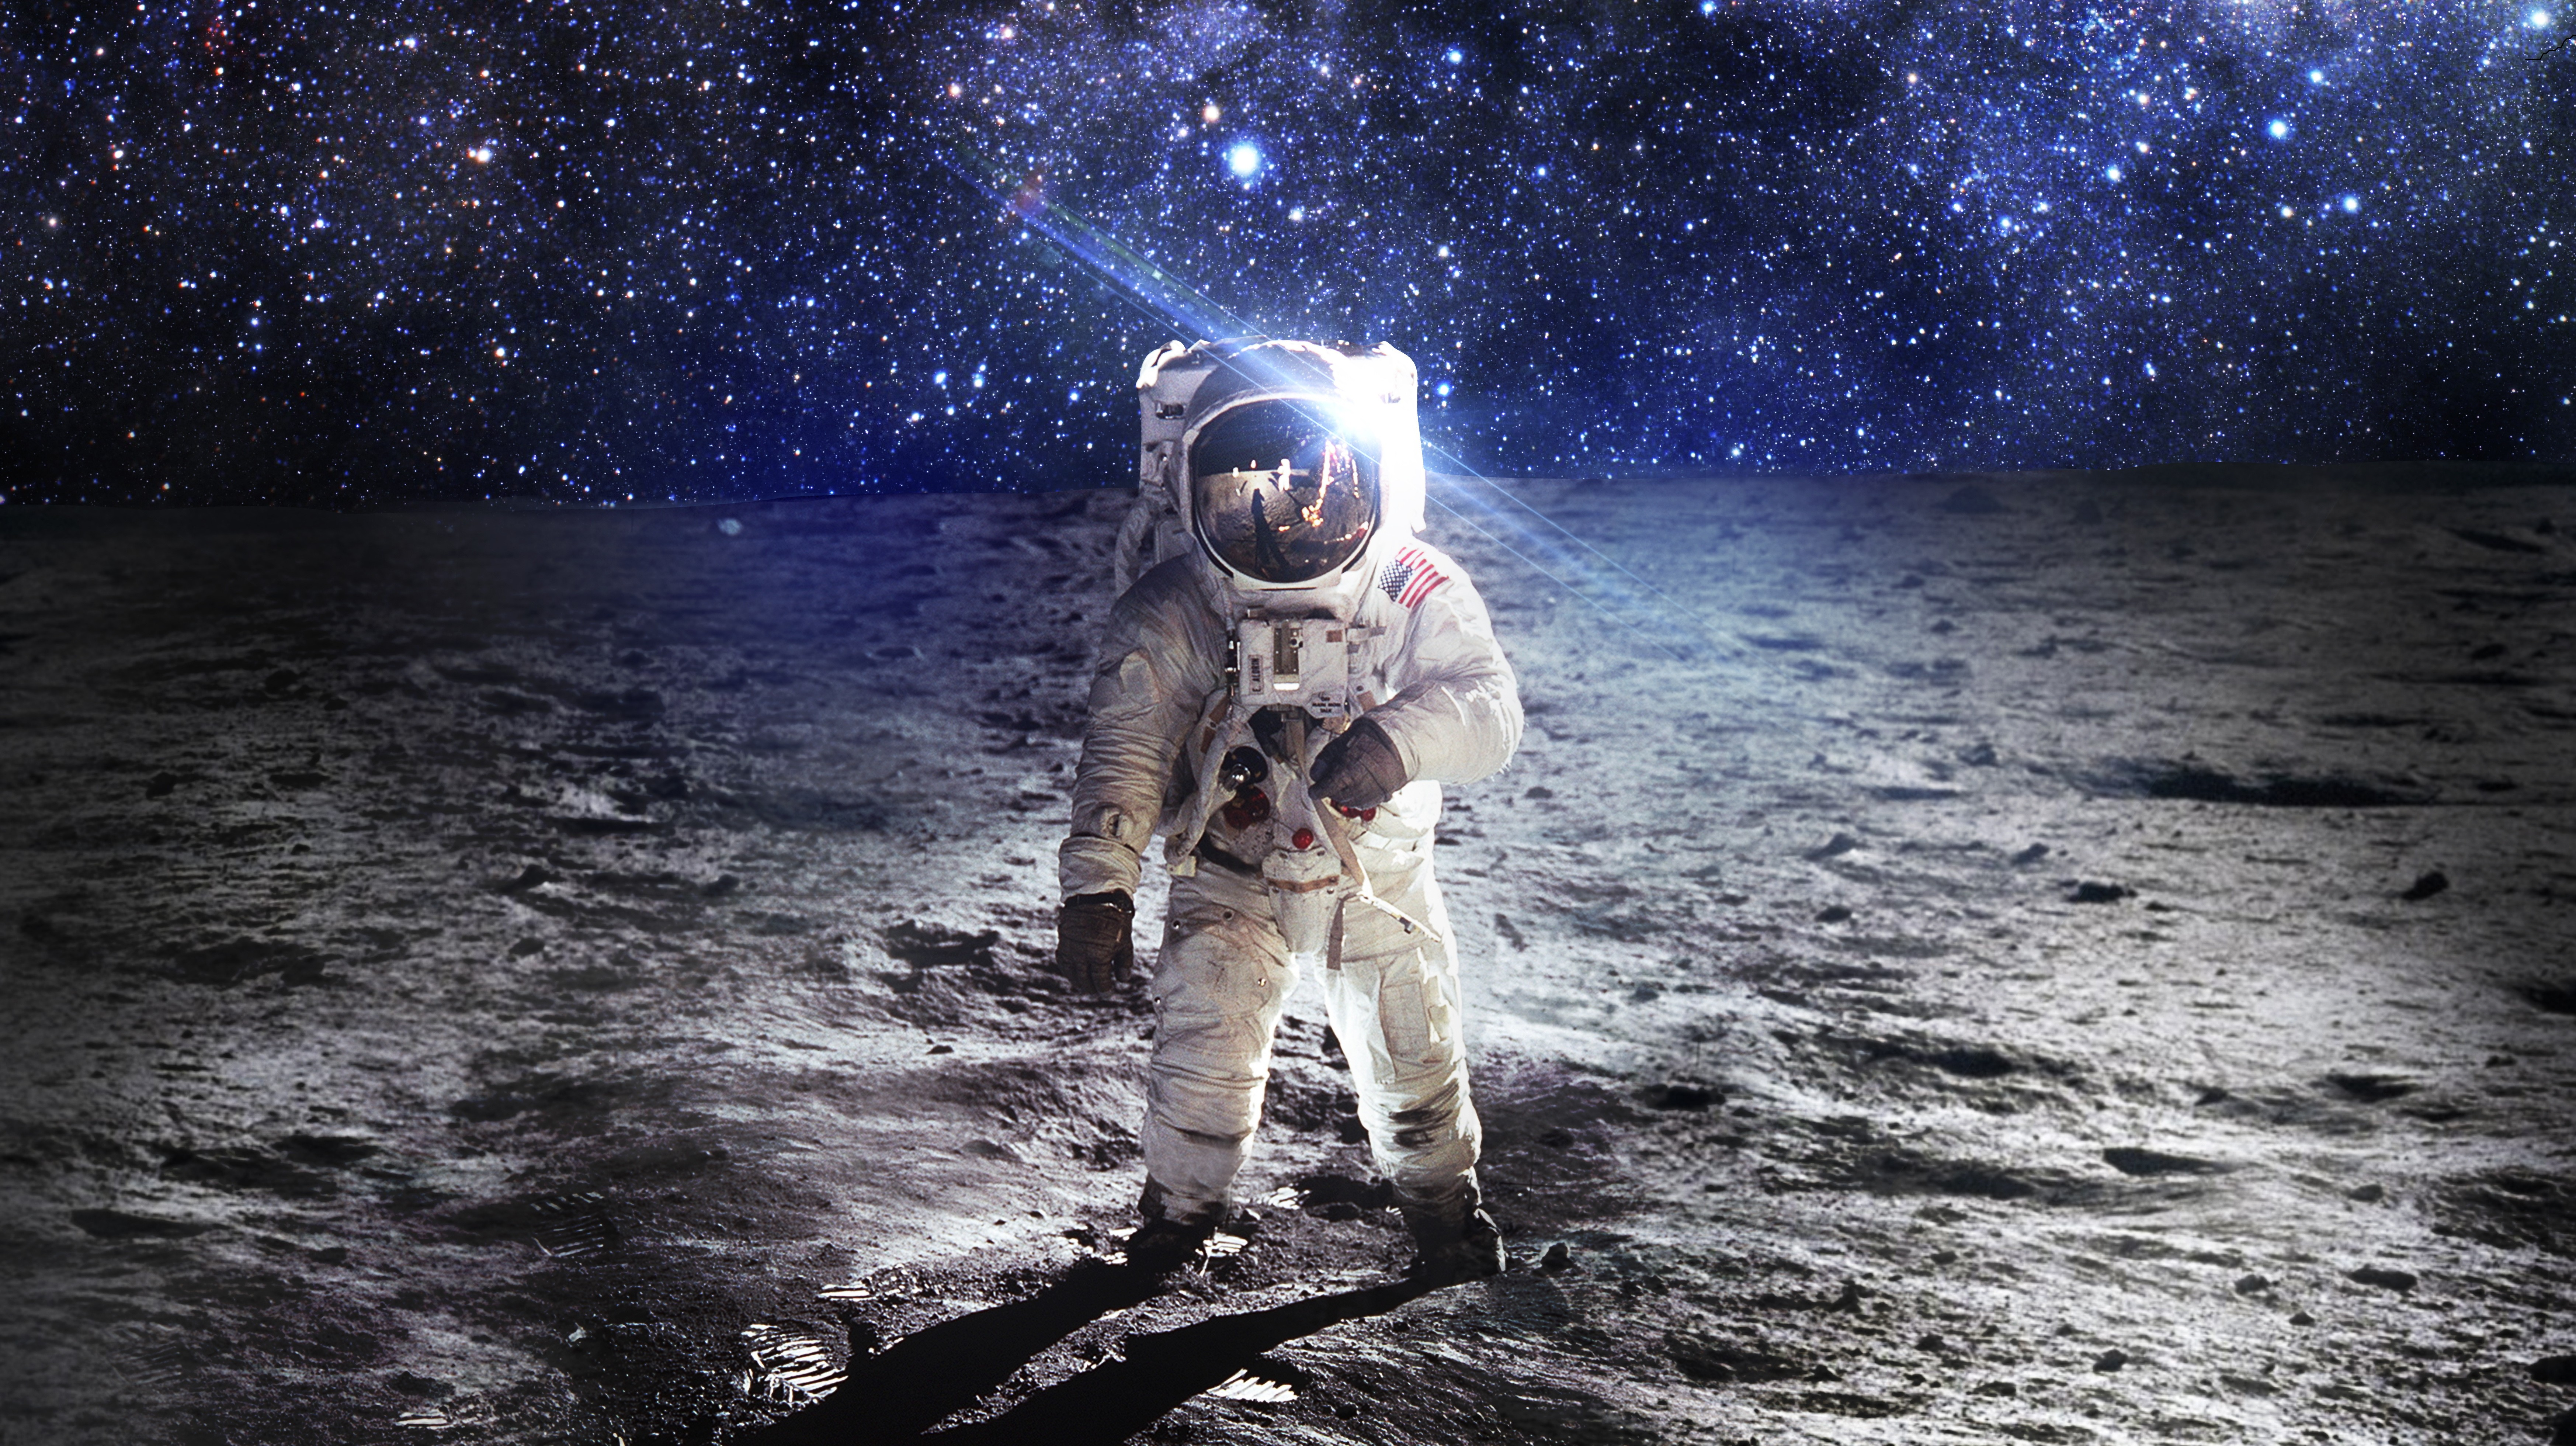 #astronaut, #space Wallpaper - Astronaut On A Planet , HD Wallpaper & Backgrounds